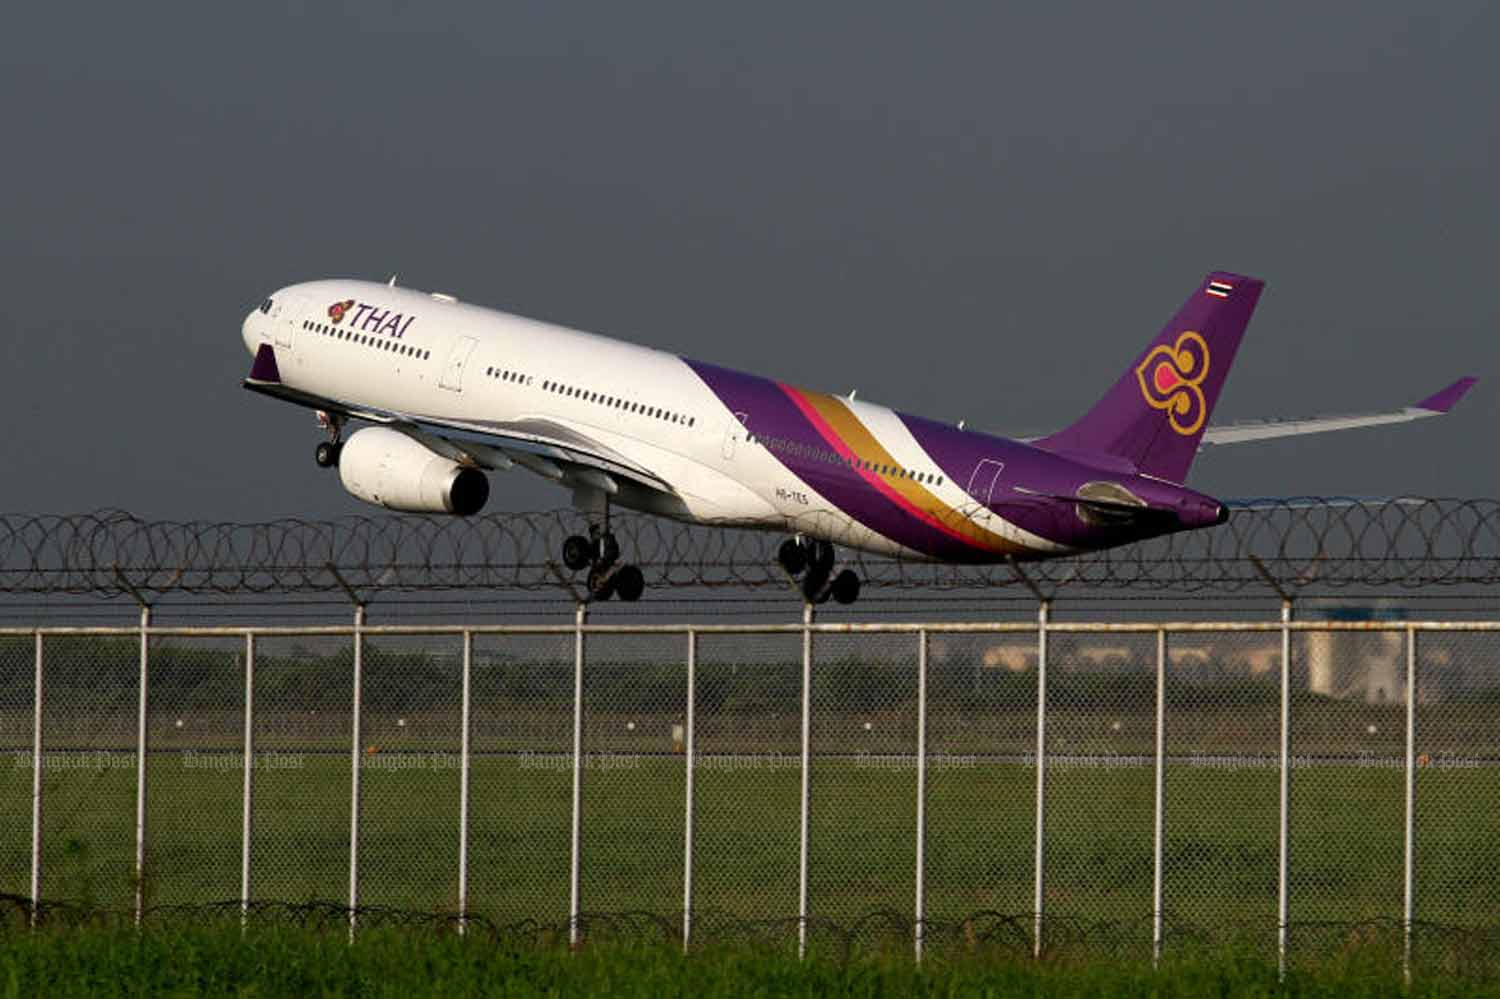 Transport Minister Saksayam Chidchob has given the green light to loss-making Thai Airways International Plc to purchase and lease 38 new aircraft. (Bangkok Post photo)